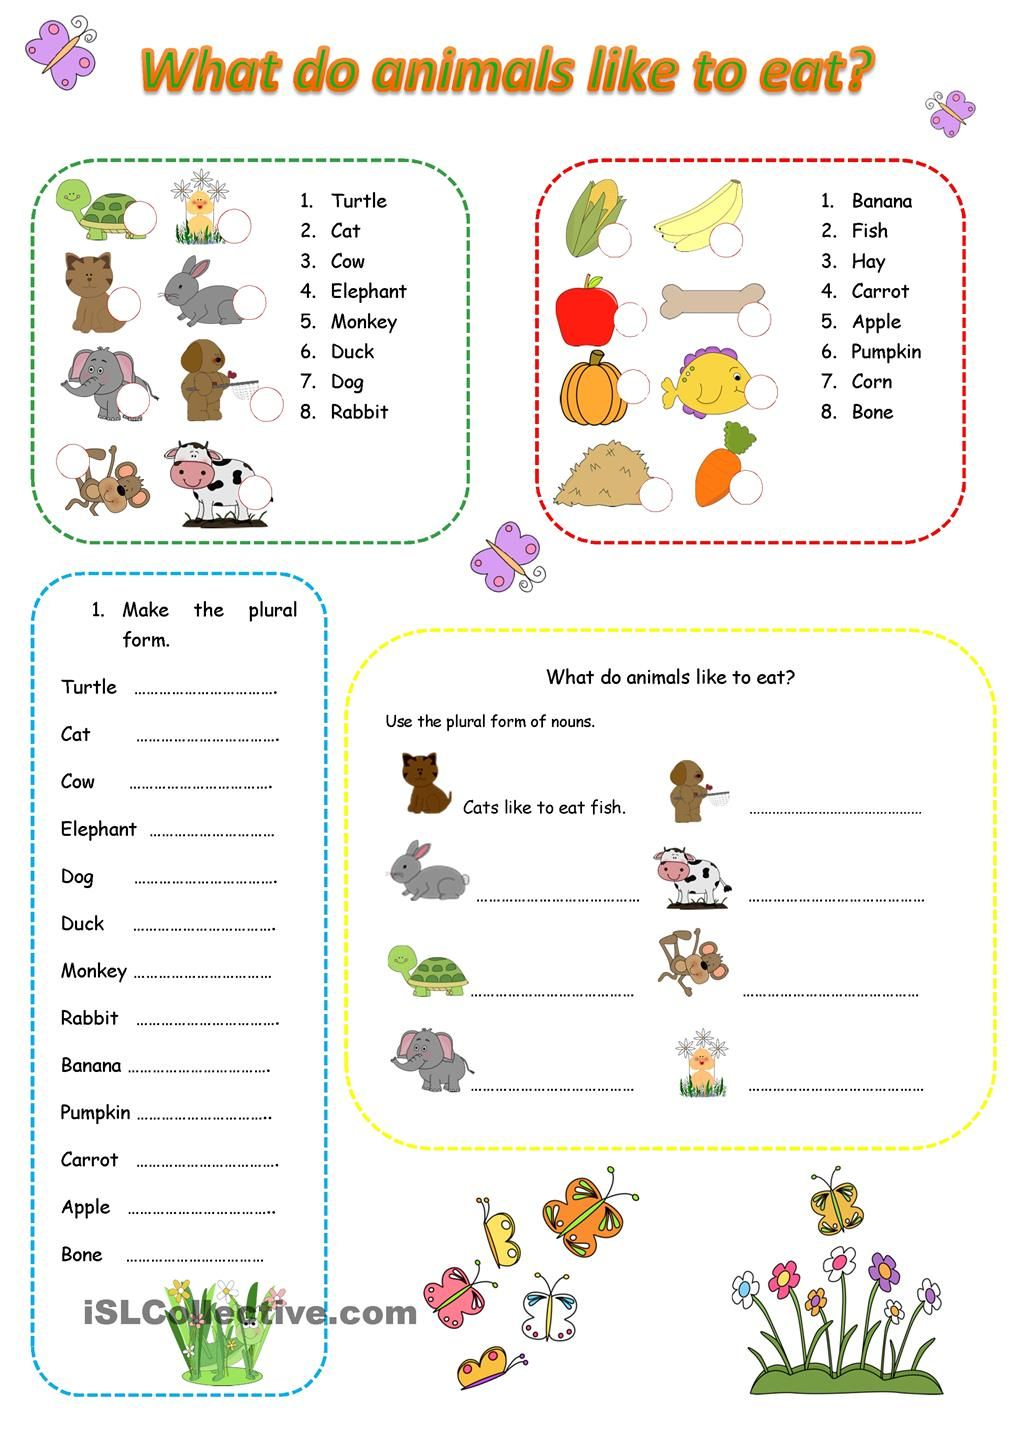 First grade life science worksheets what do animals eat 1 - What Do Animals Like To Eat